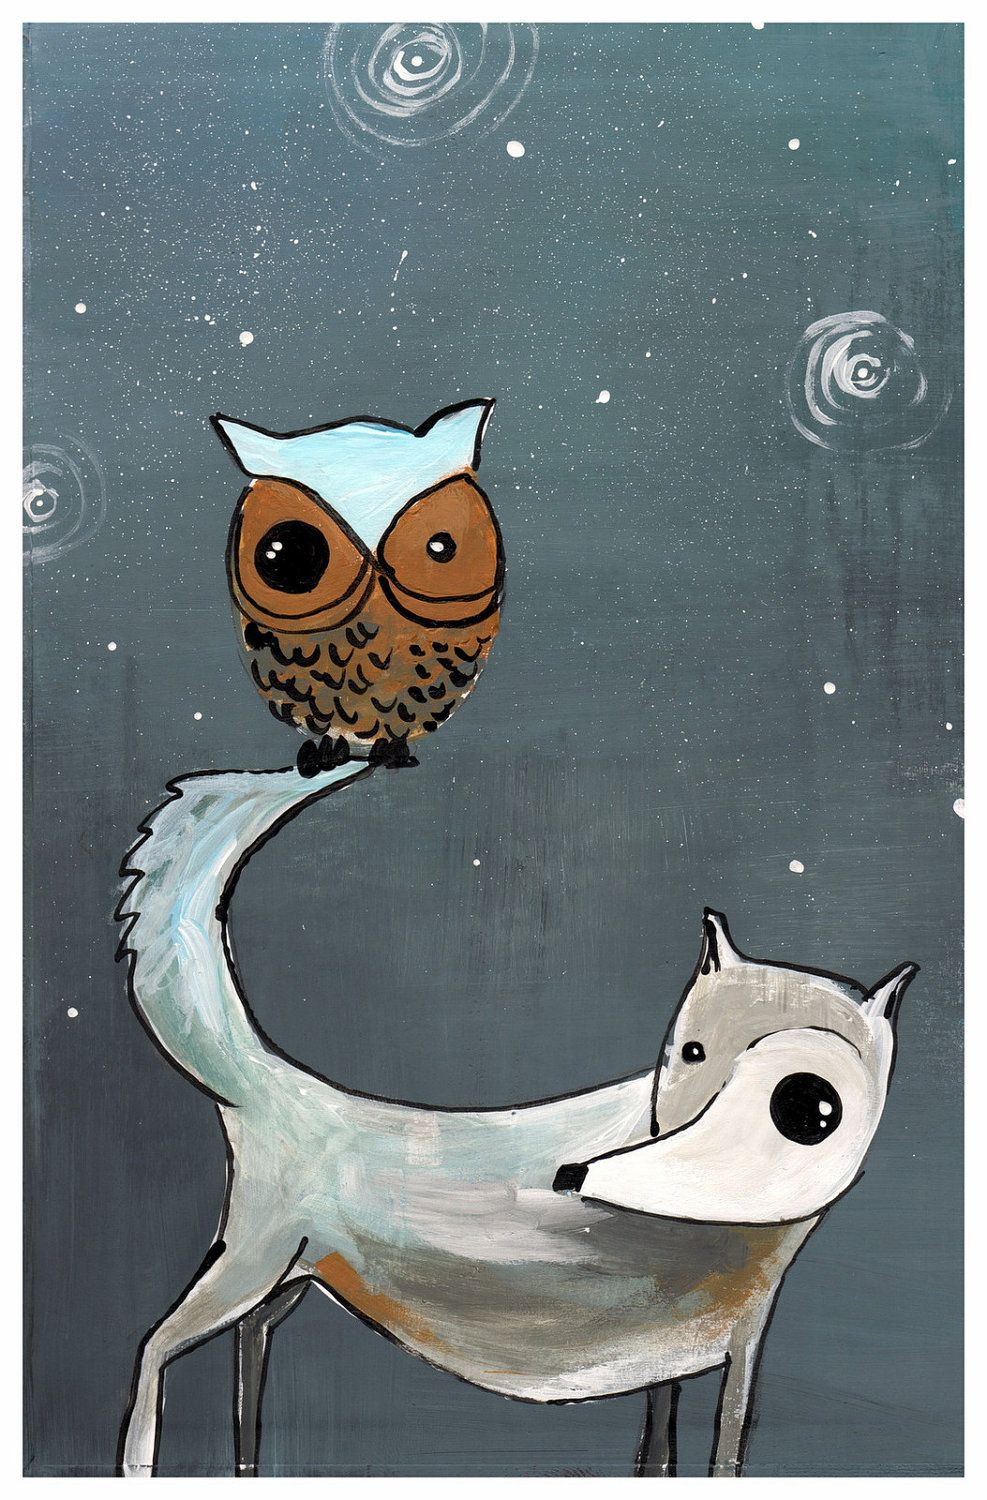 wolf and owl GIant <3 poster print  11x17 poster print -gray and white wolf with mustard yellow - deep yellow owl on his tail. $20.00, via Etsy.